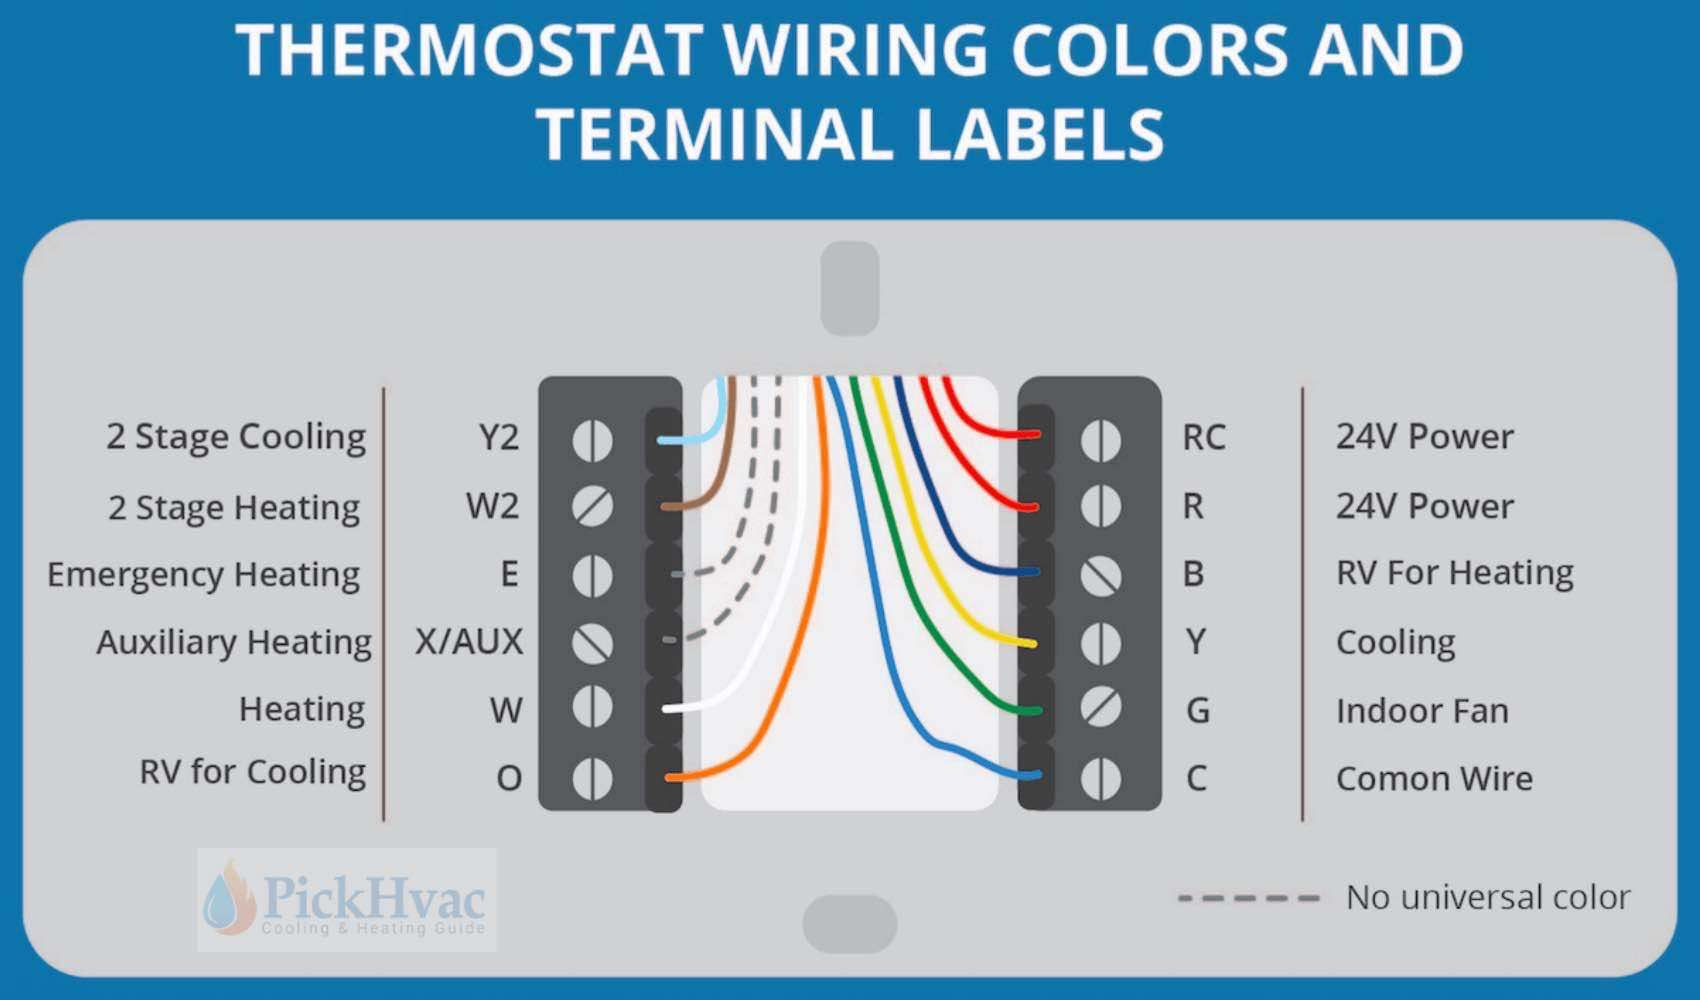 thermostat wiring colors to labels | Thermostat wiring | Wire, Baseboards